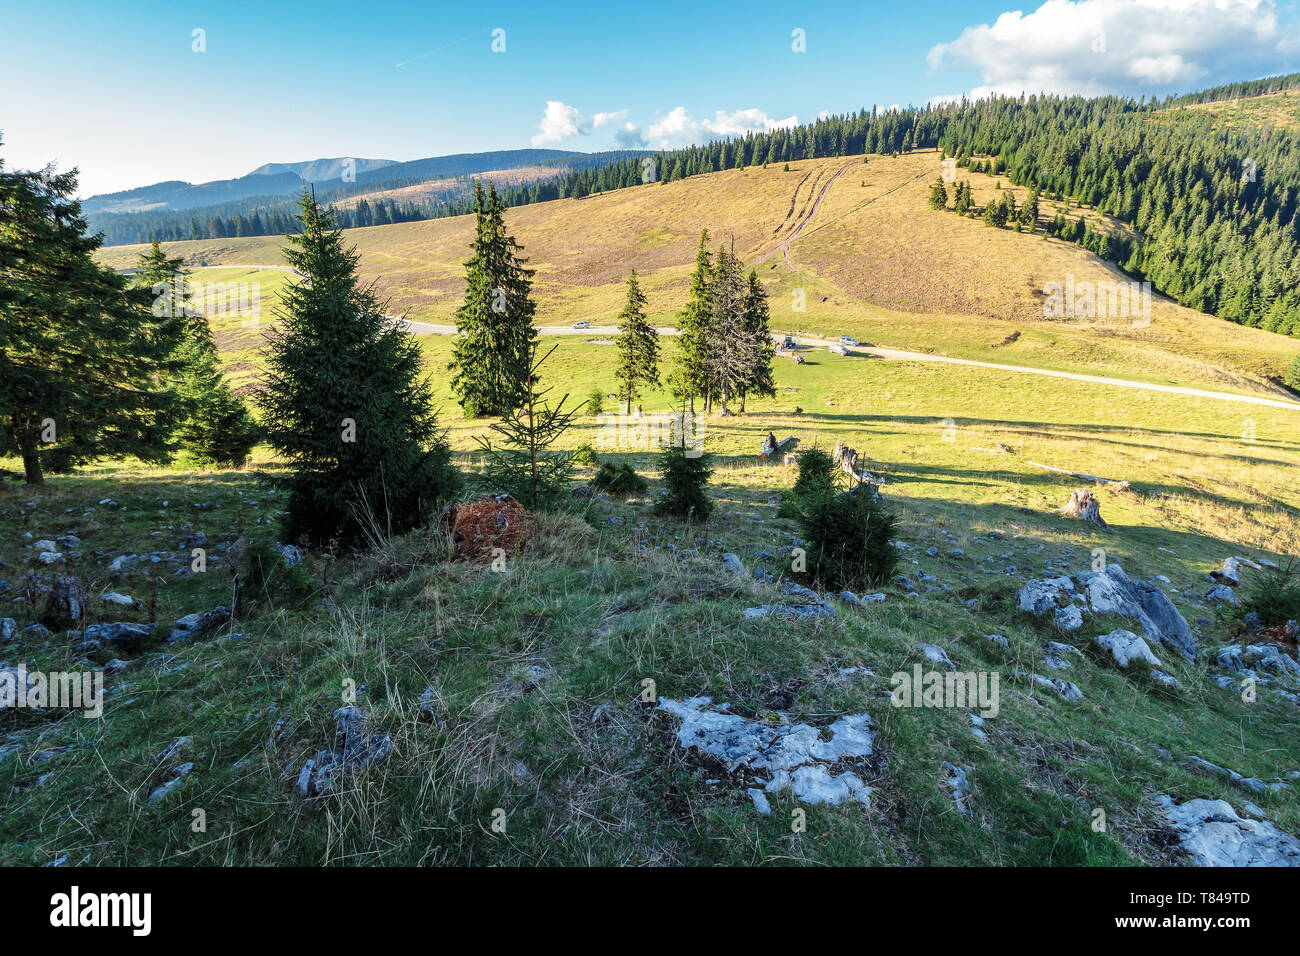 evening scenery of apuseni national park. mountain landscape with spruce forest on grassy hills with stones. warm autumn weather with clouds on the sk - Stock Image